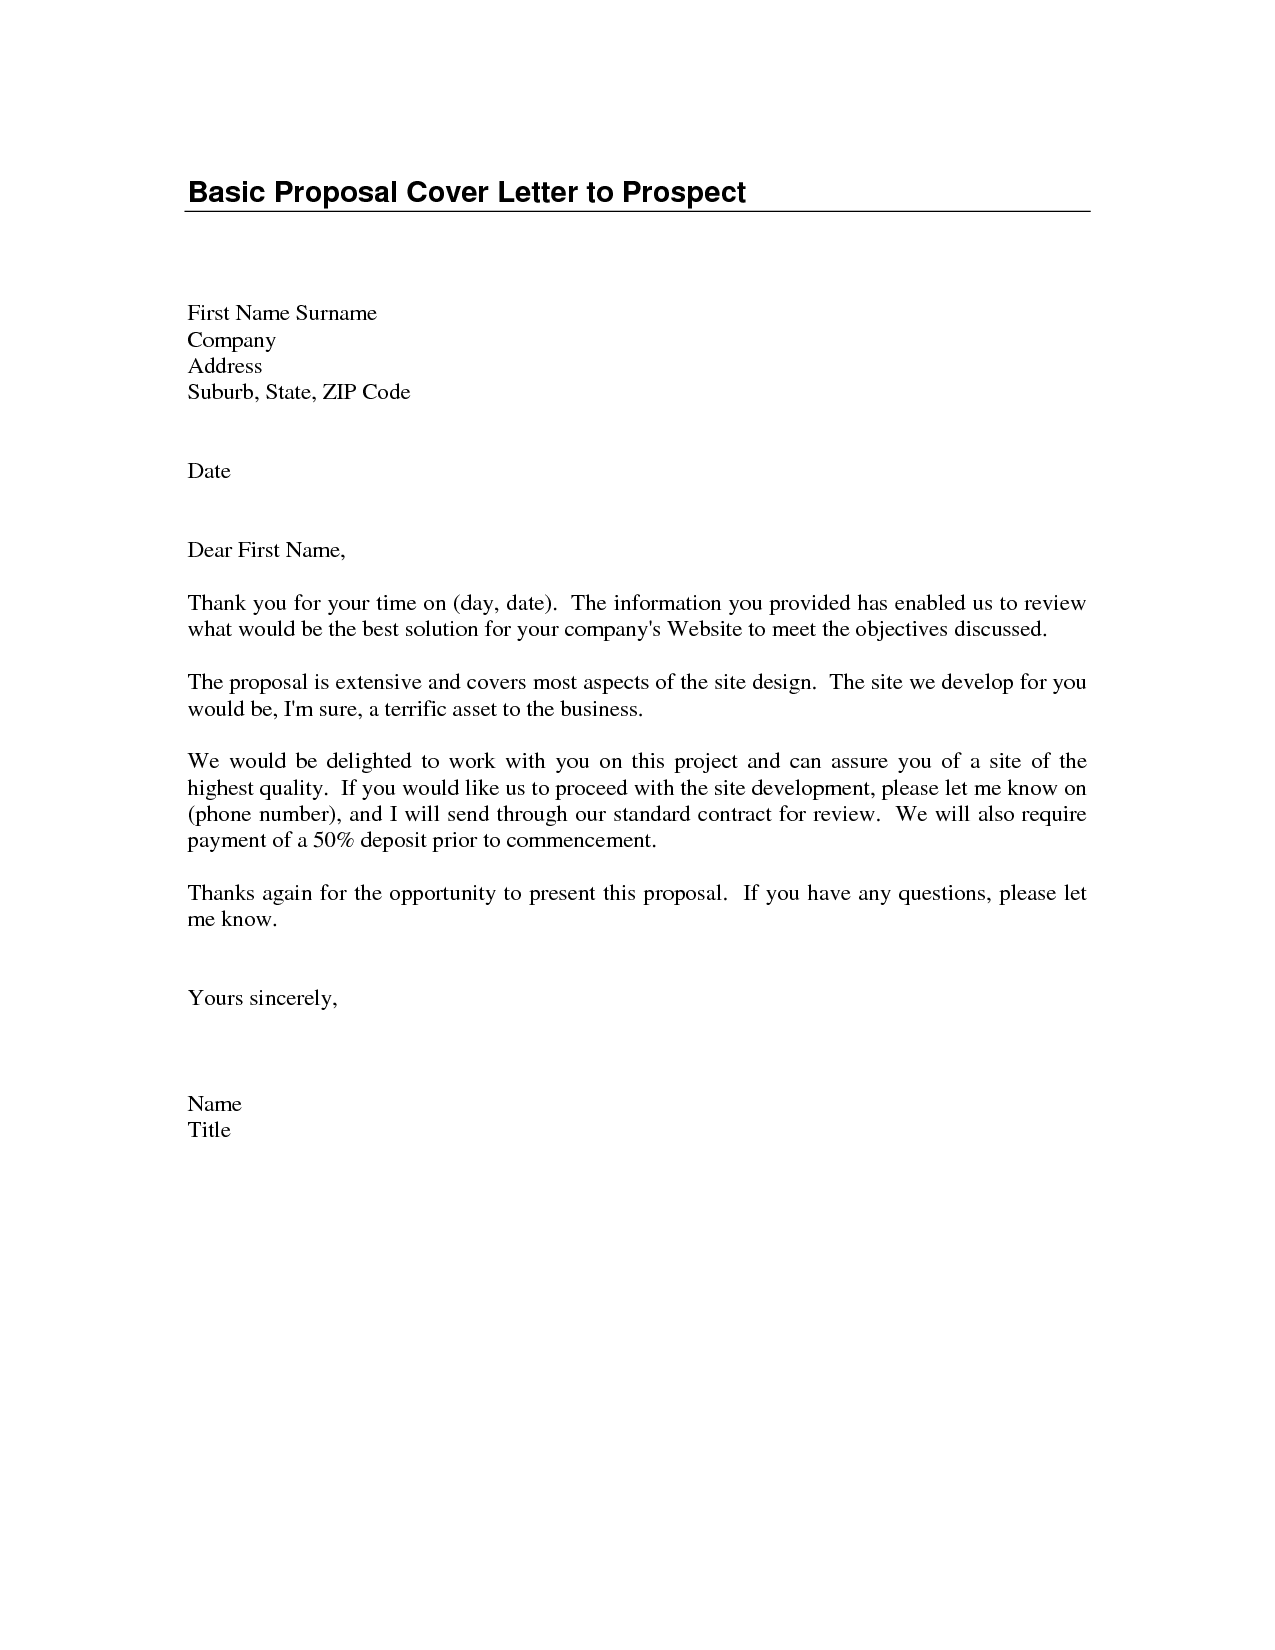 Basic Cover Letter Sample Basic Cover Letters Free BasicSimple Cover ...